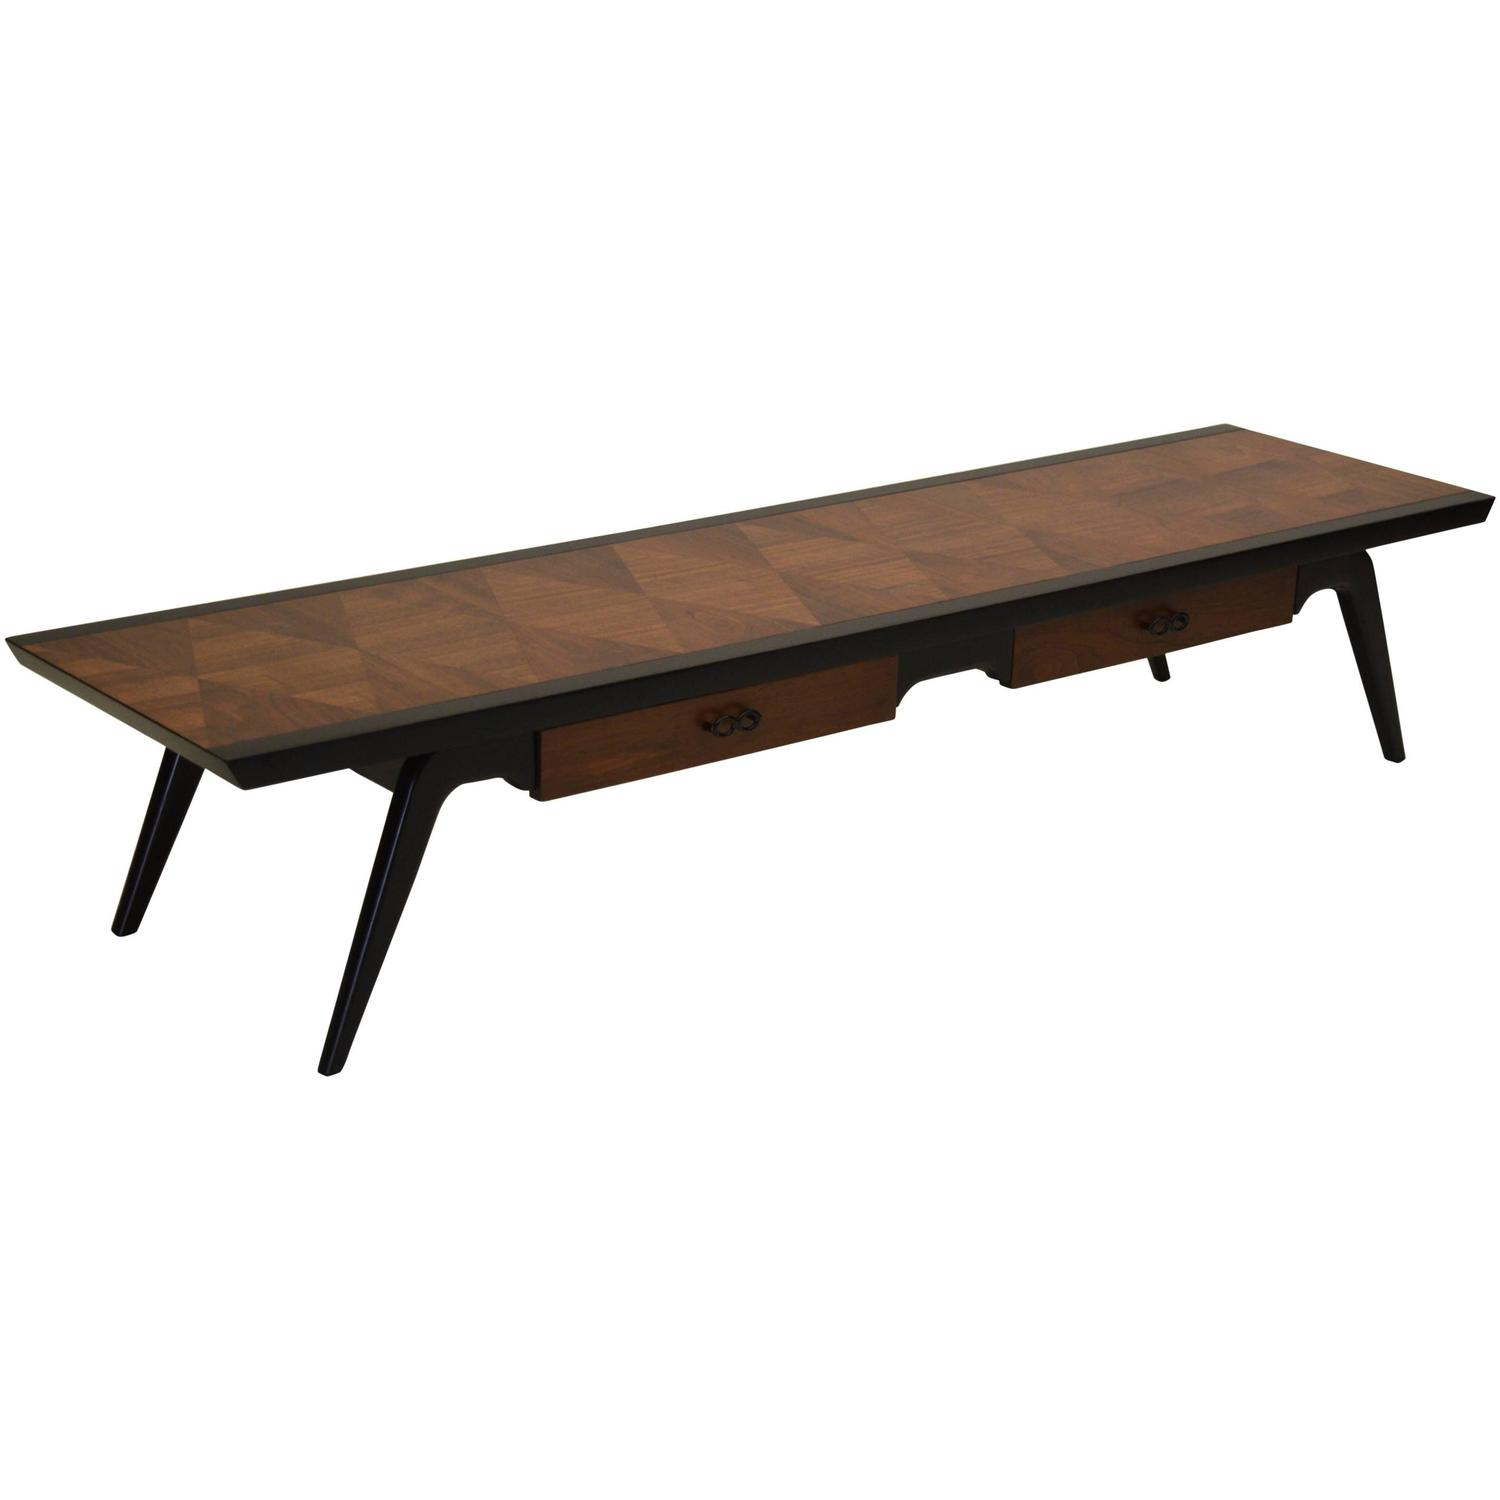 Black lacquer and walnut long sofa coffee table by lane for Long couches for sale